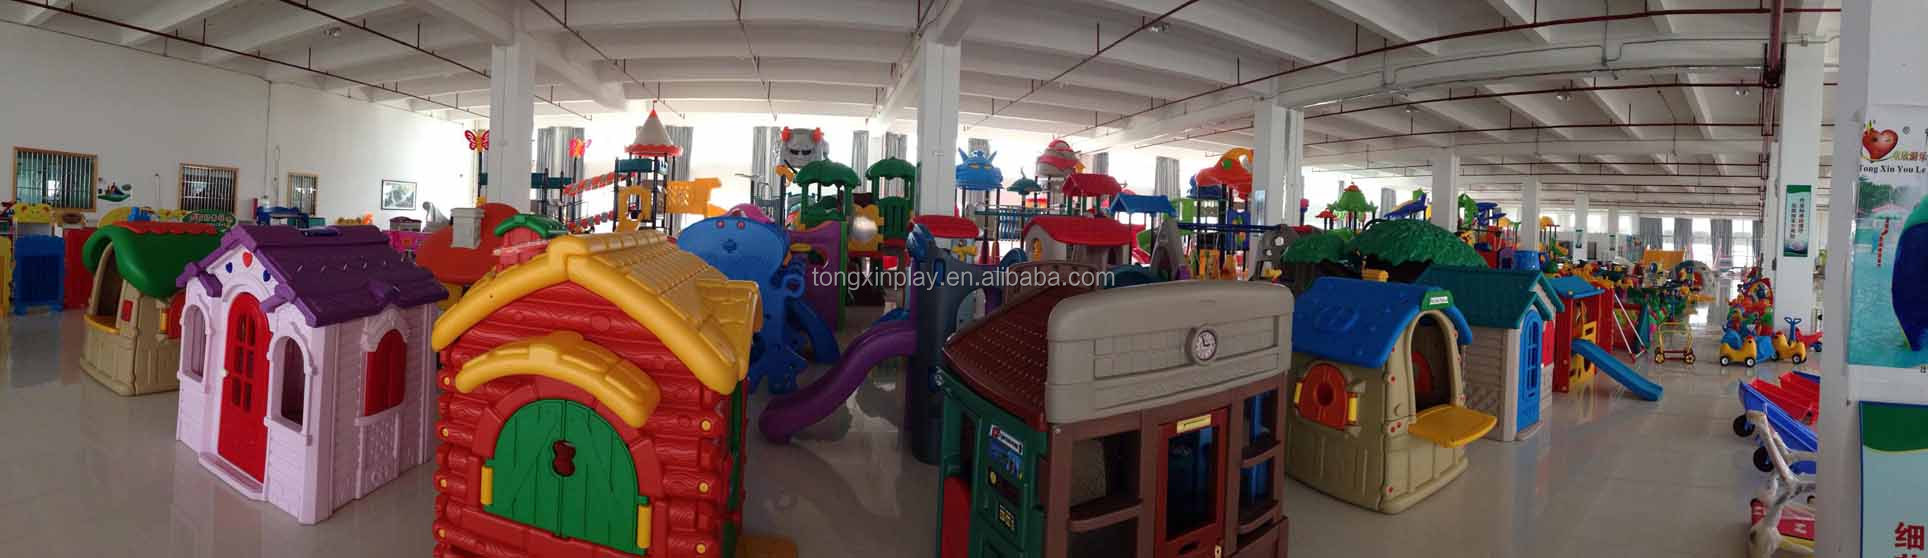 non-standard Eco-friend theme park amusement equipment customized by the site